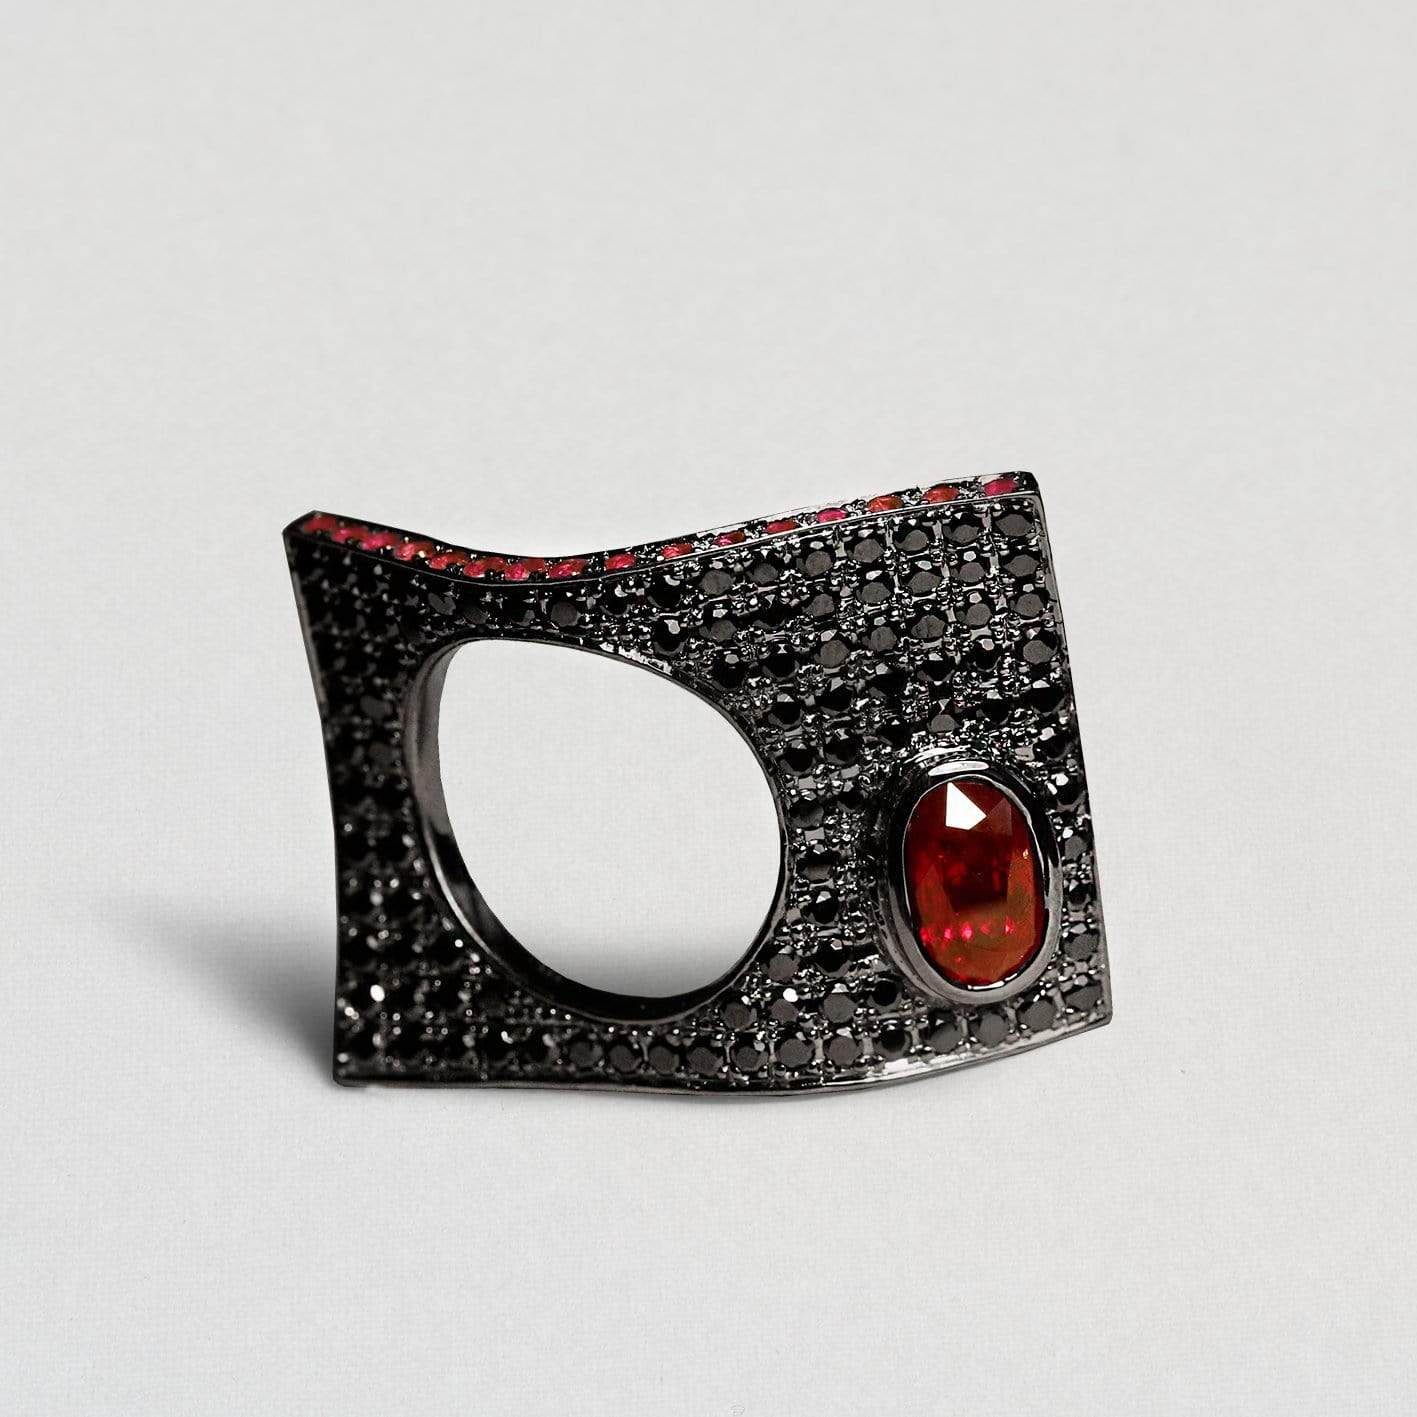 Morgaine Ring, Exclusive, gray, Rhodium, Ruby, spo-disabled, StoneColor:Red, Style:Statement Ring